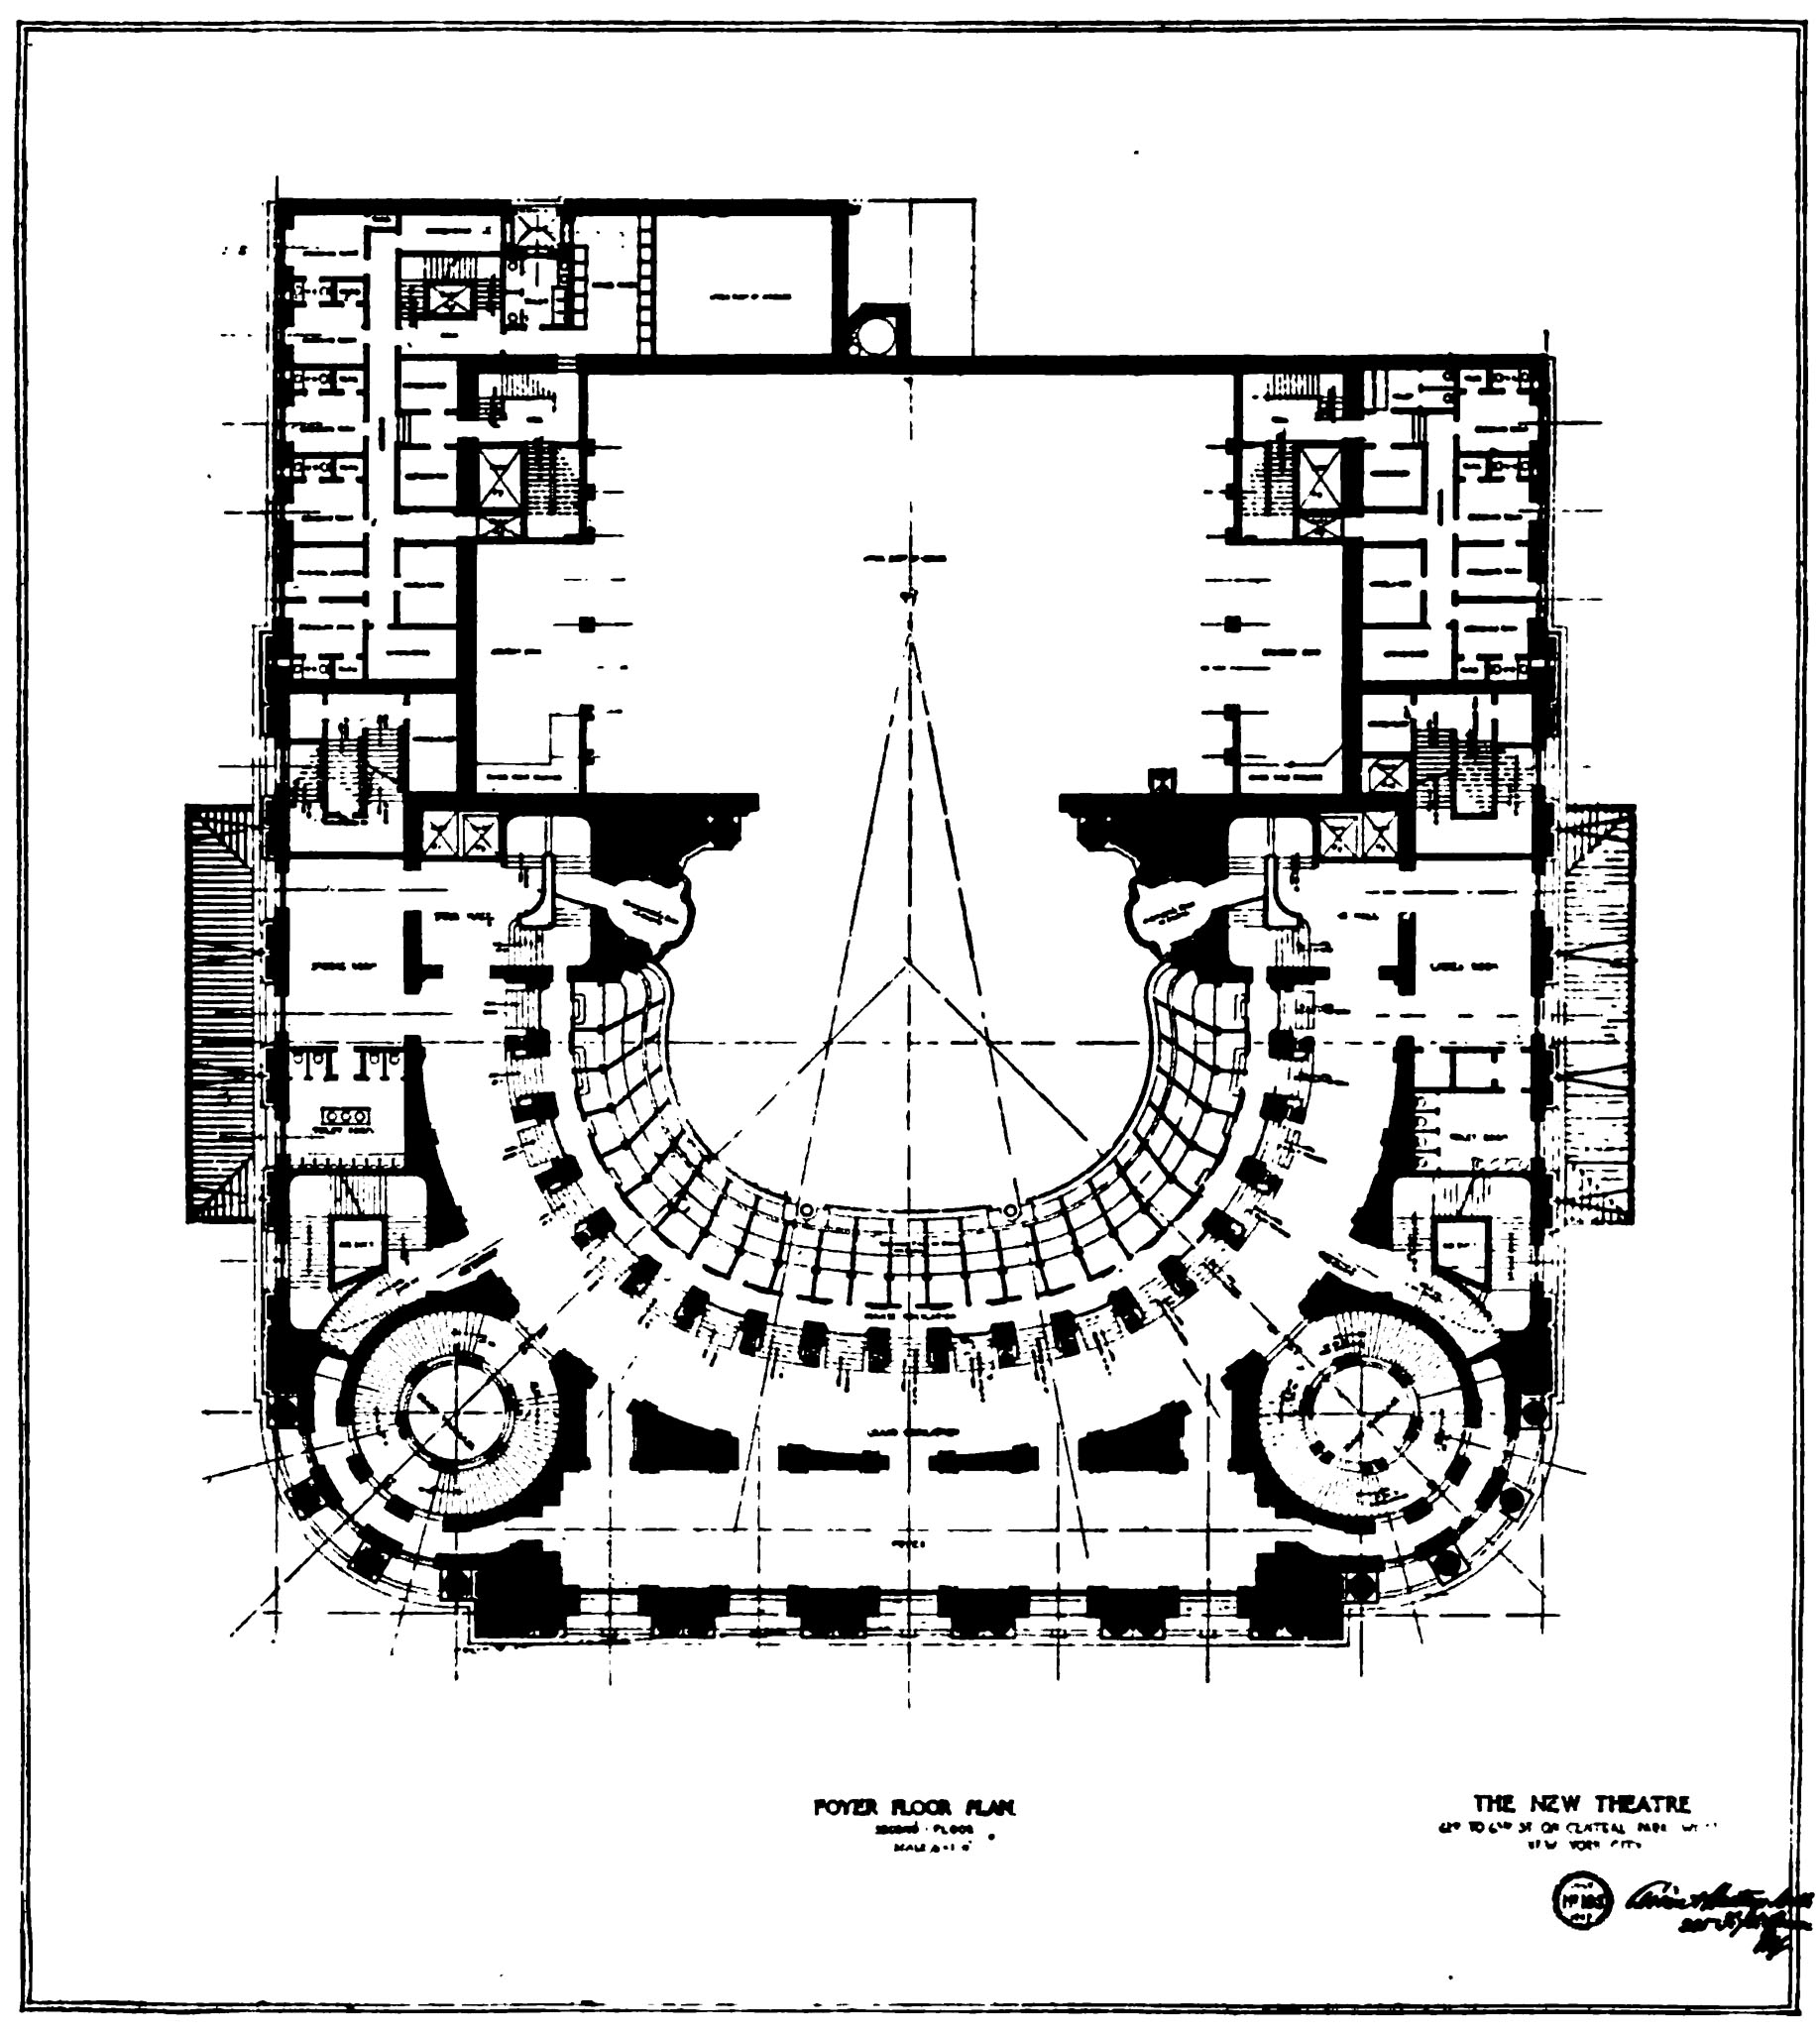 Free home plans theatre floorplans - Useful home theater design plans ...